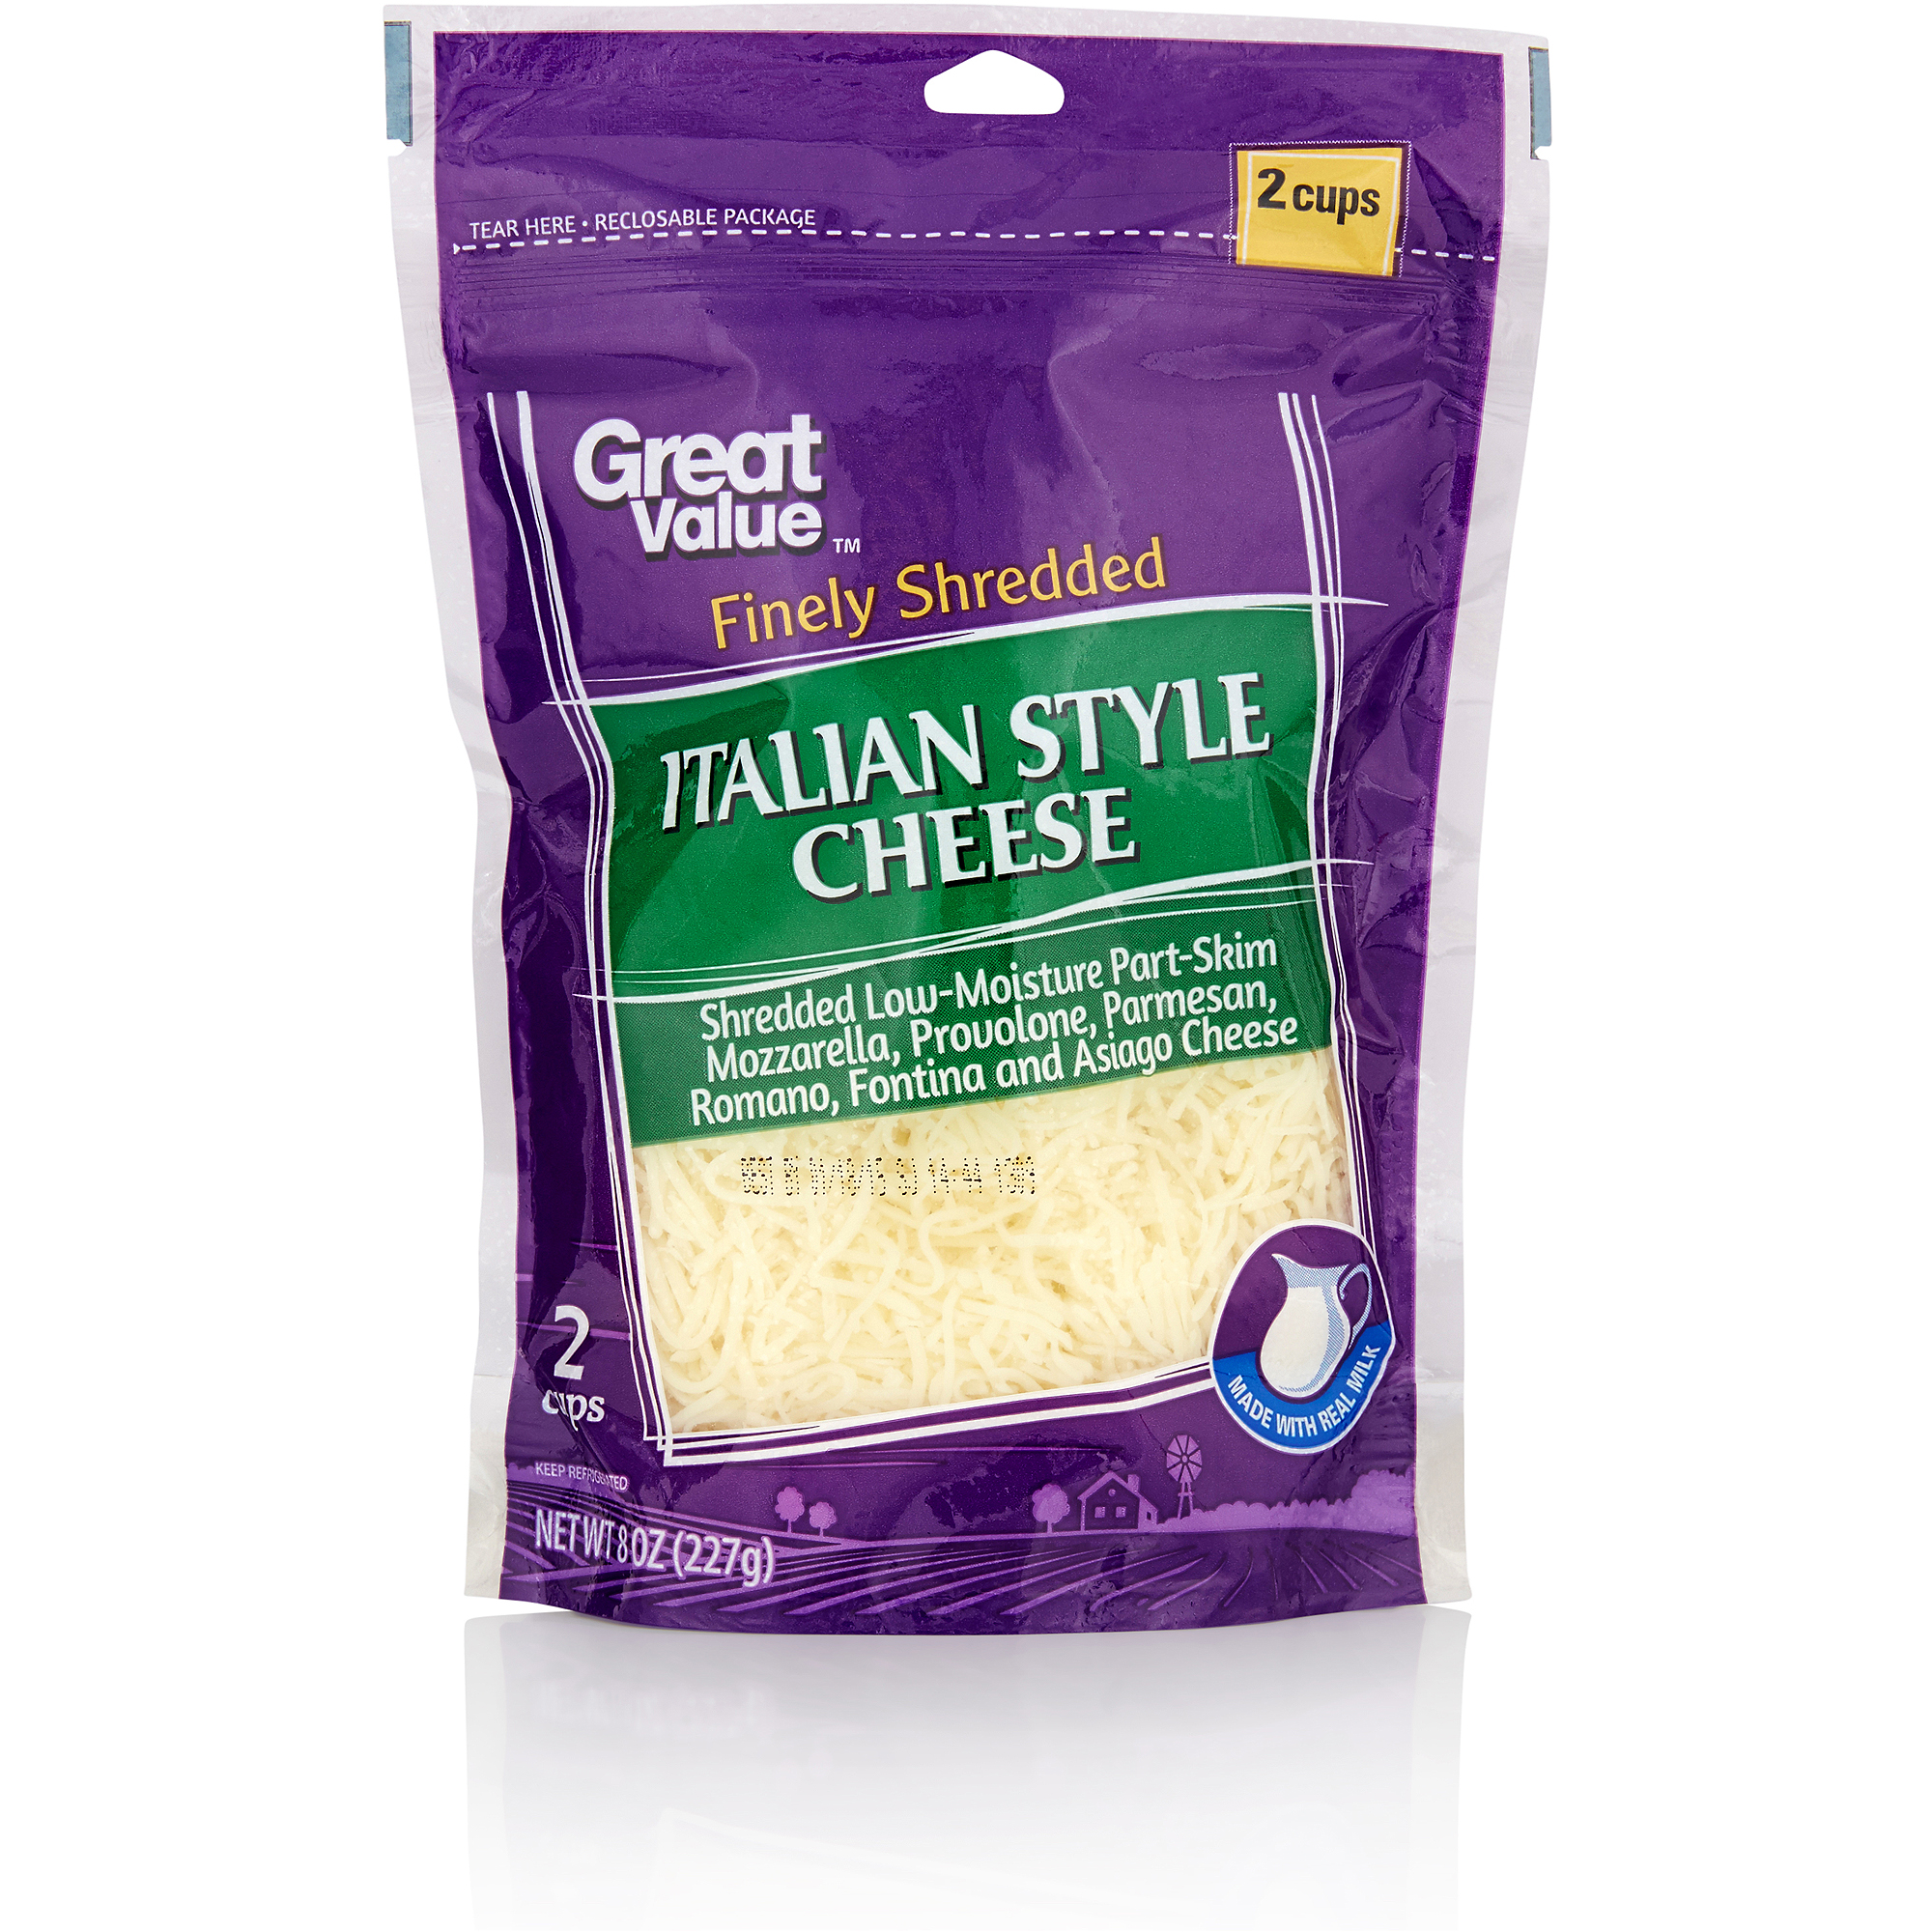 Great Value: Finely Shredded Italian Style Cheese, 8 Oz